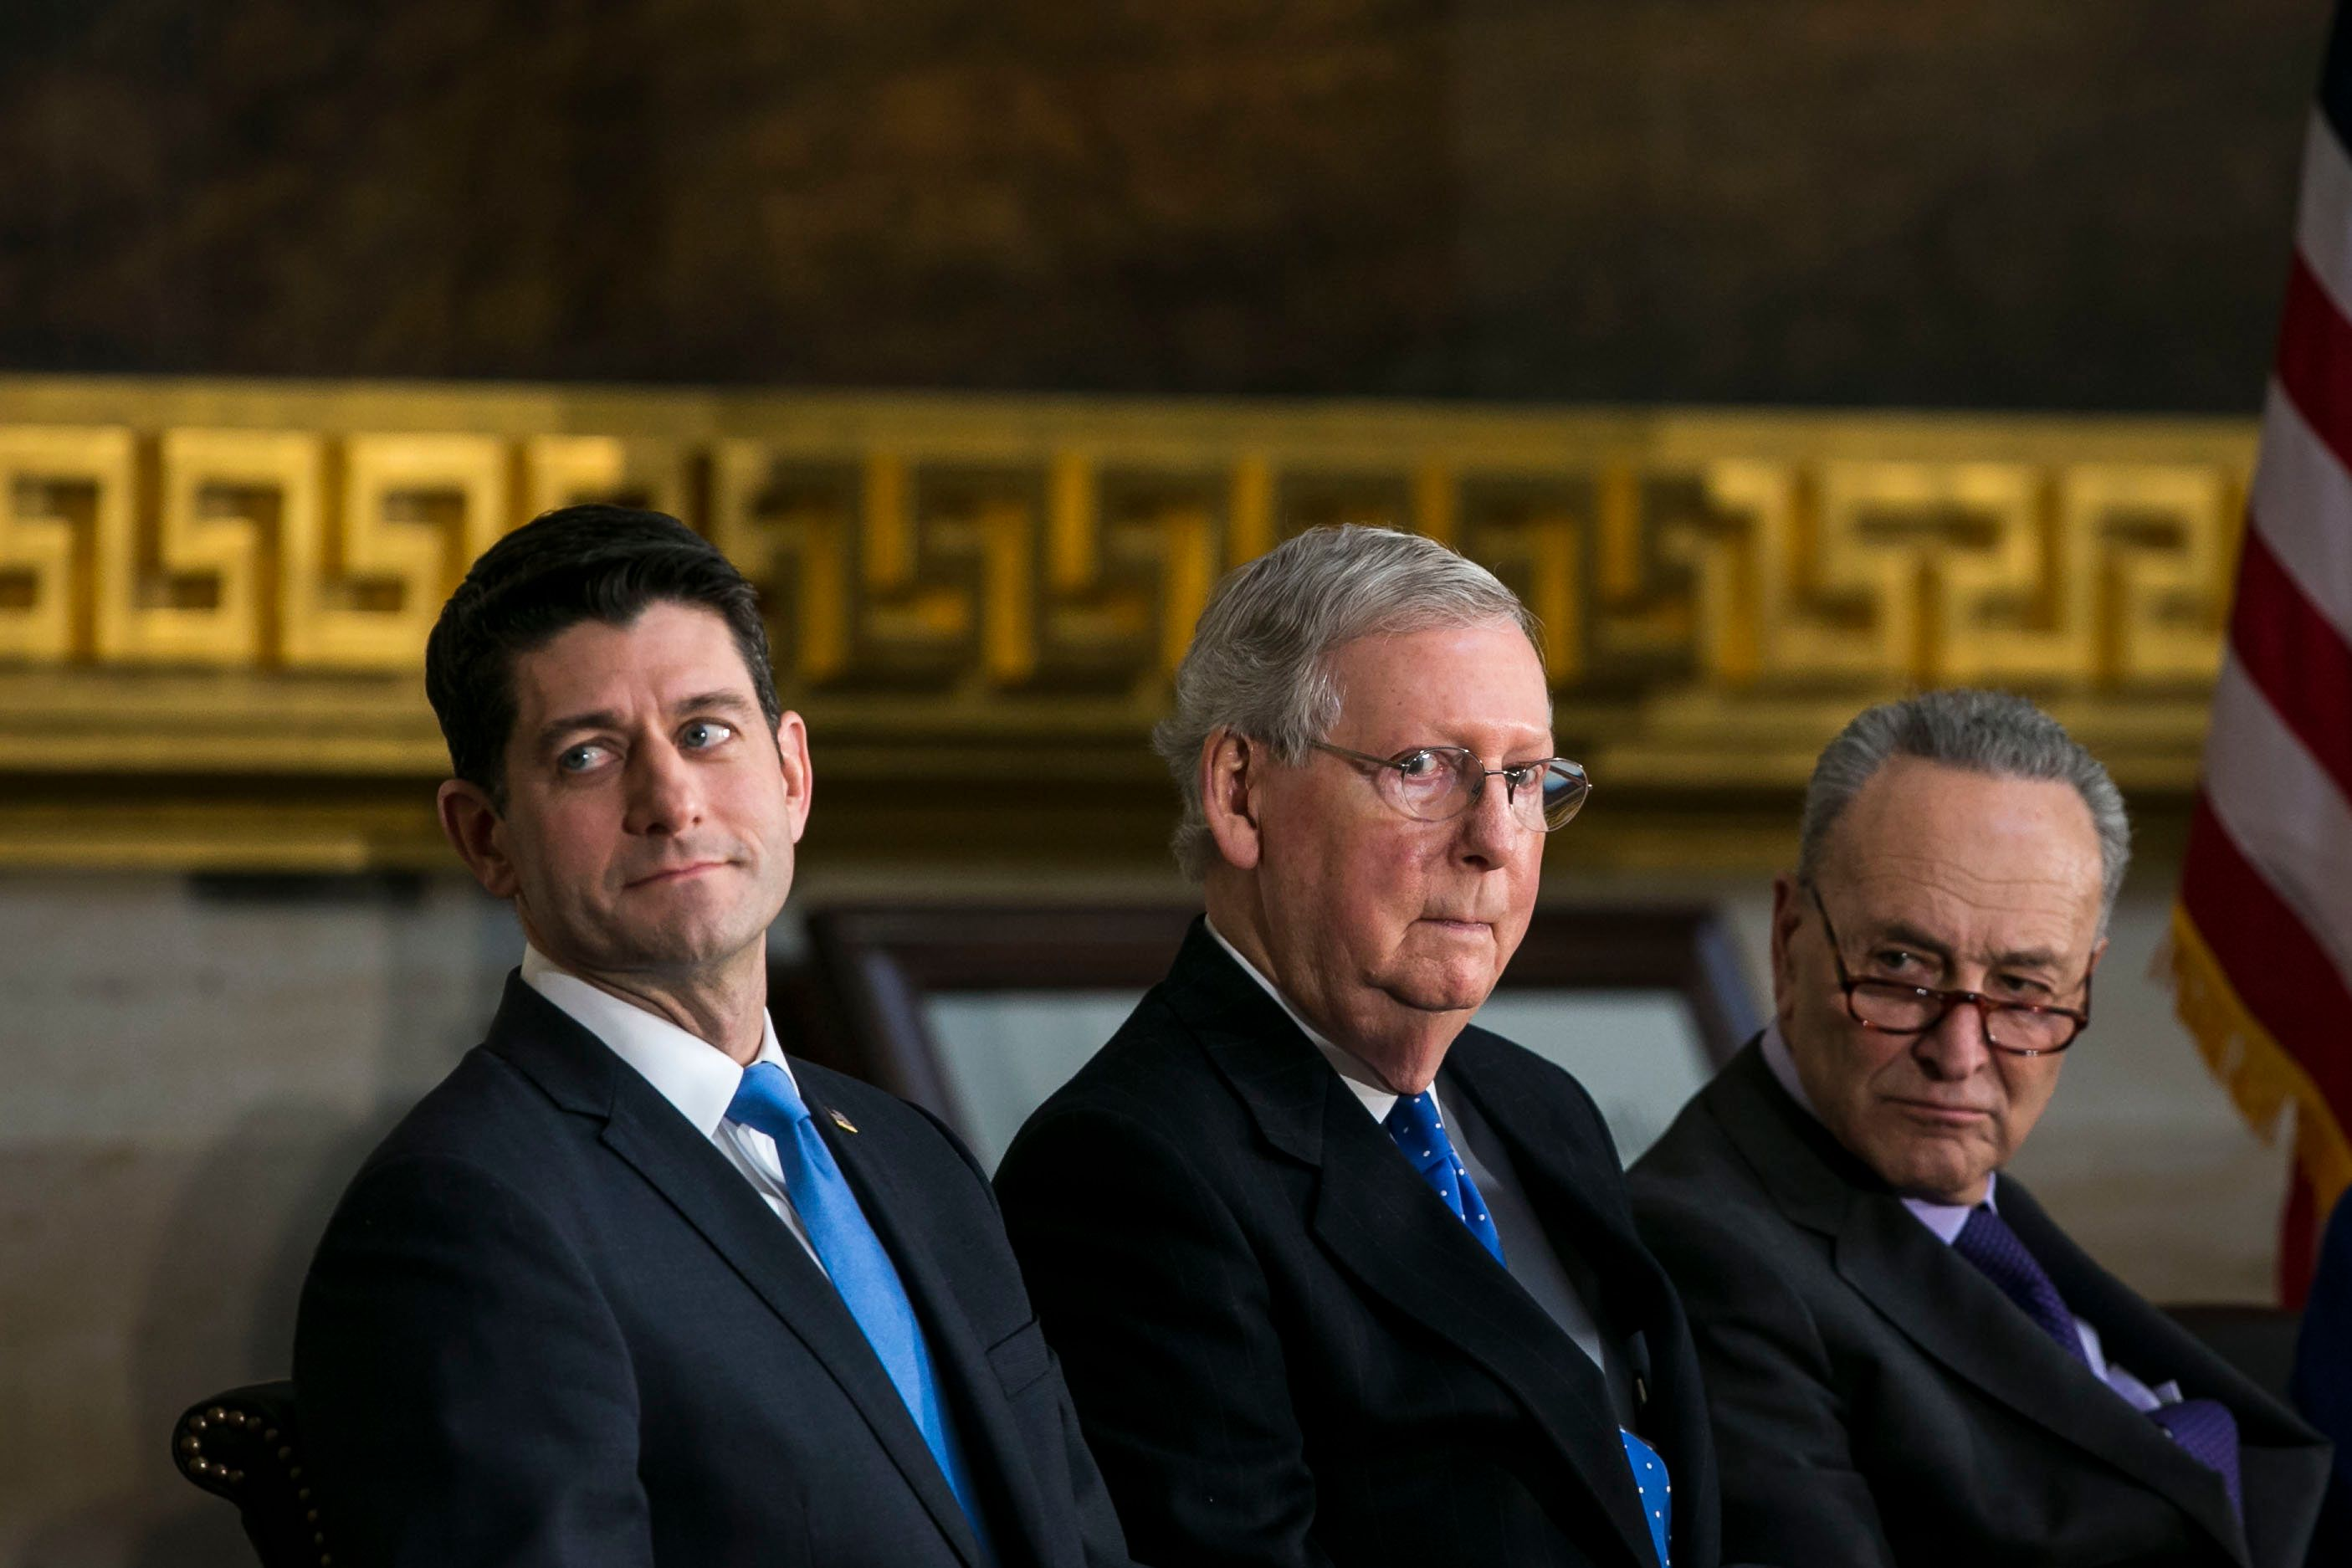 House Speaker Paul Ryan (R-Wis.), Senate Majority Leader Mitch McConnell (R-Ky.) and Senate Minority Leader Chuck S